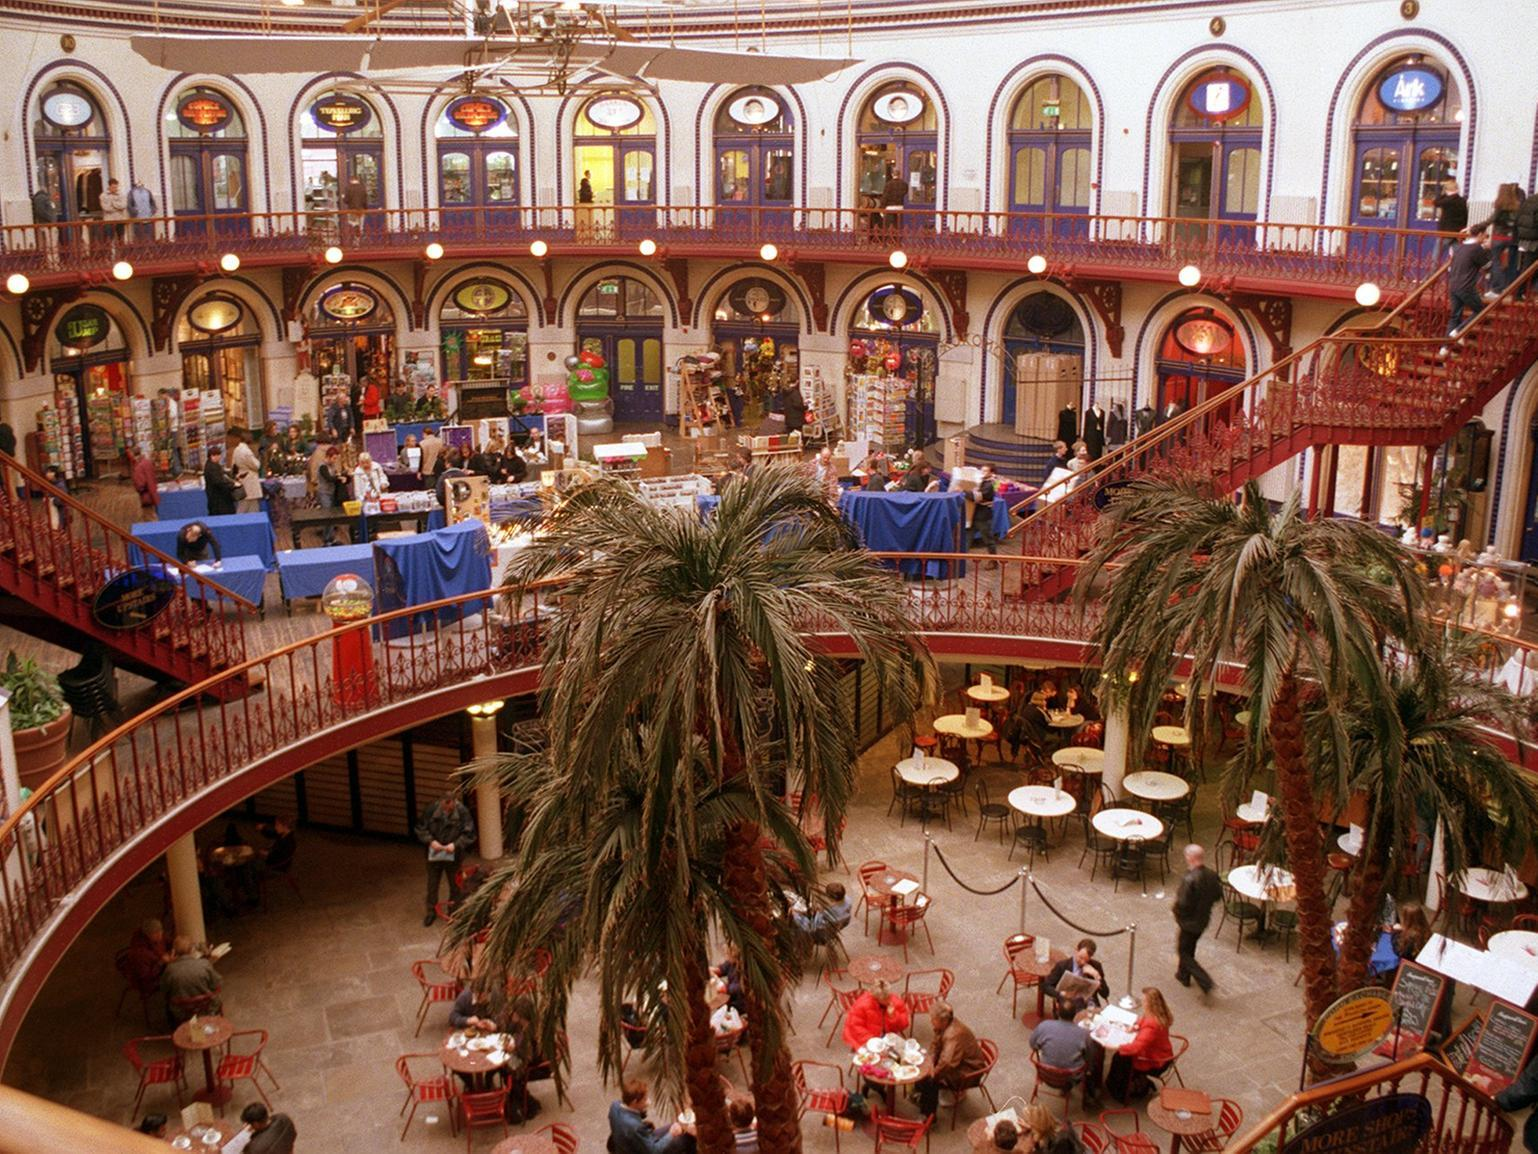 Changing Leeds - Go inside the Corn Exchange during the 1990s and 2000s